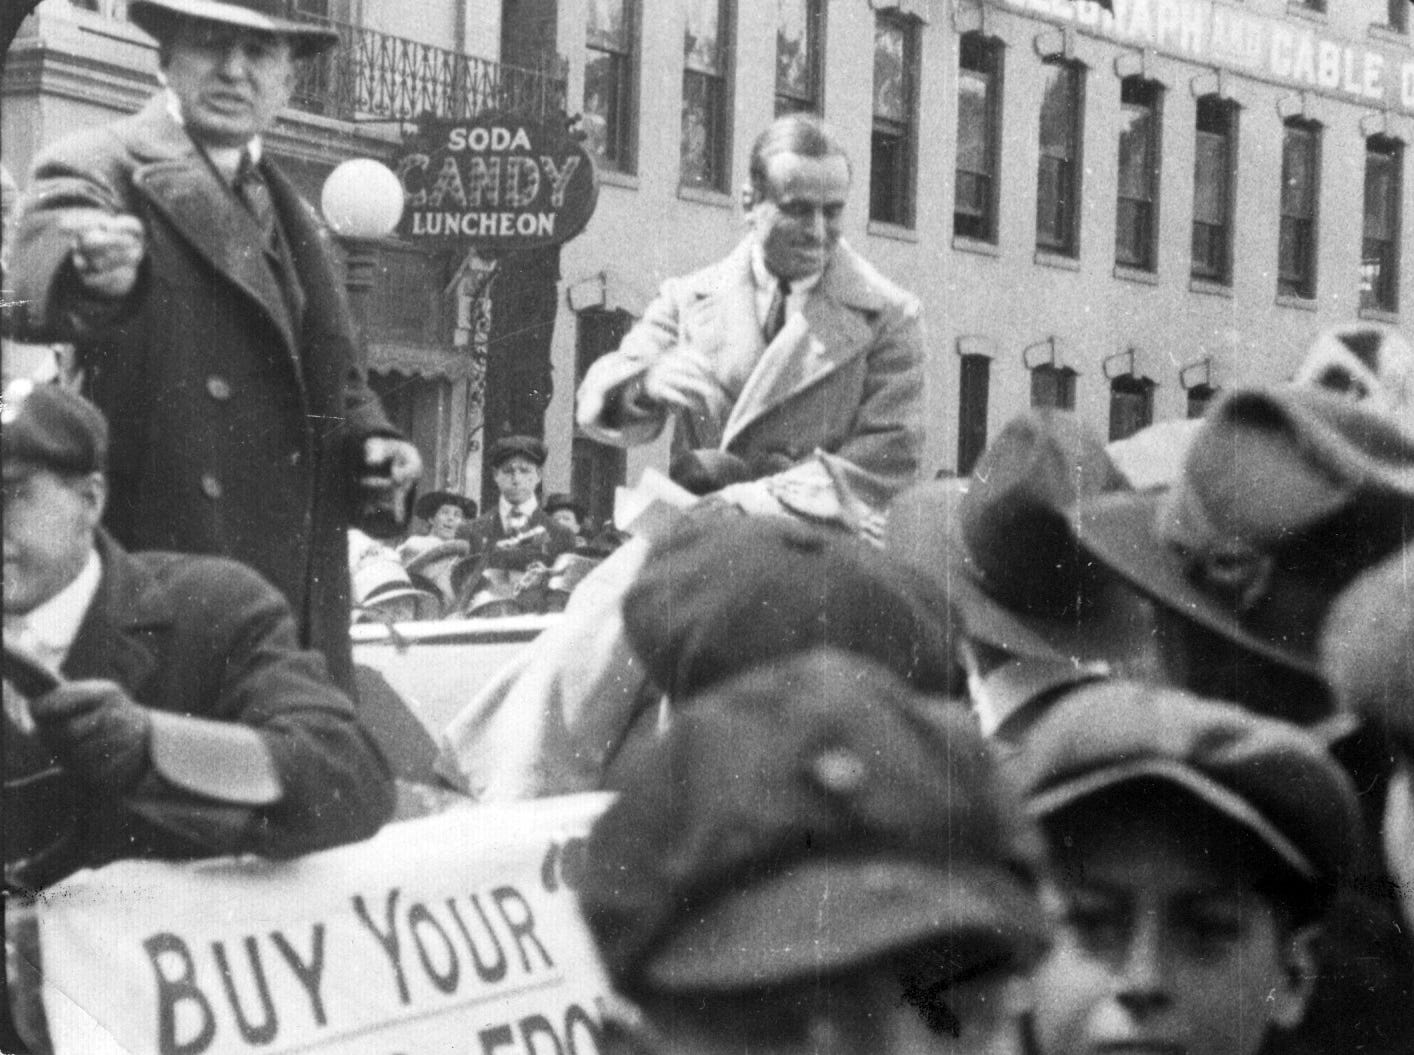 Movie star, Douglas Fairbanks appeared in the Marion County Liberty Loan campaign parade April 13, 1918 and boosted the sale of bonds for the war chest. Fairbanks also wowed the crowd with his gymnastic stunts that made him a swashbuckling matinee idol.